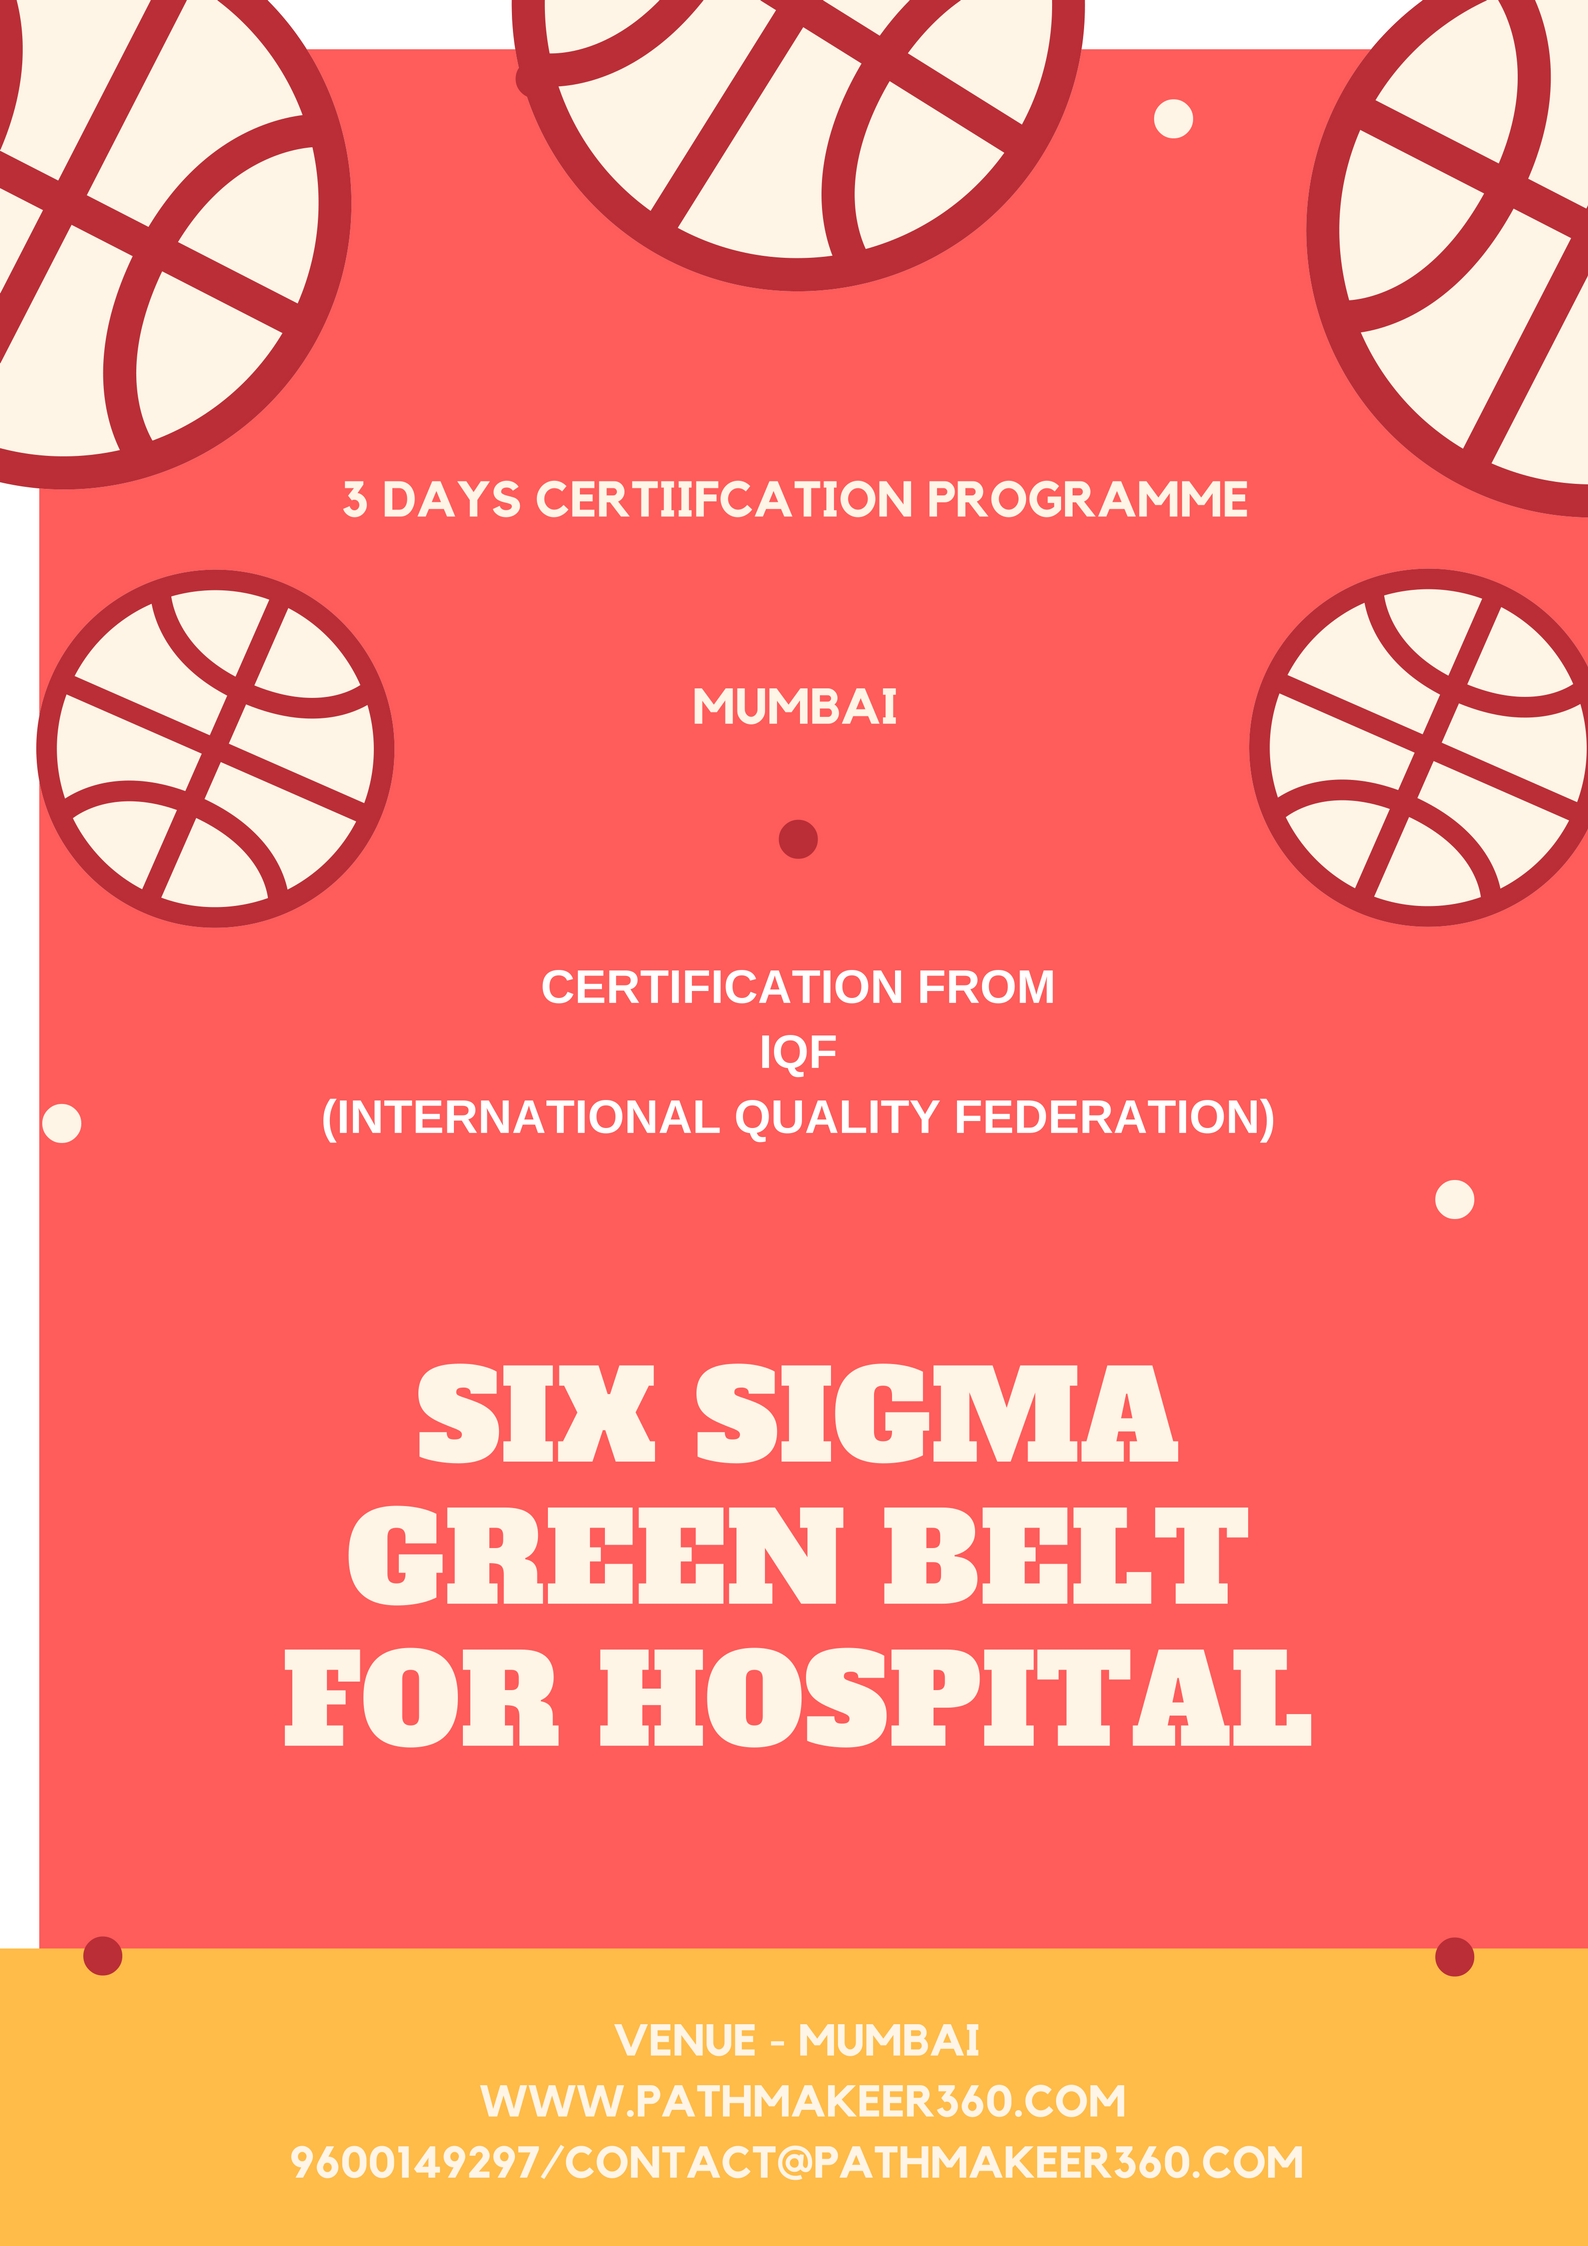 Six Sigma Certification In Chennai Six Sigma Training Course In